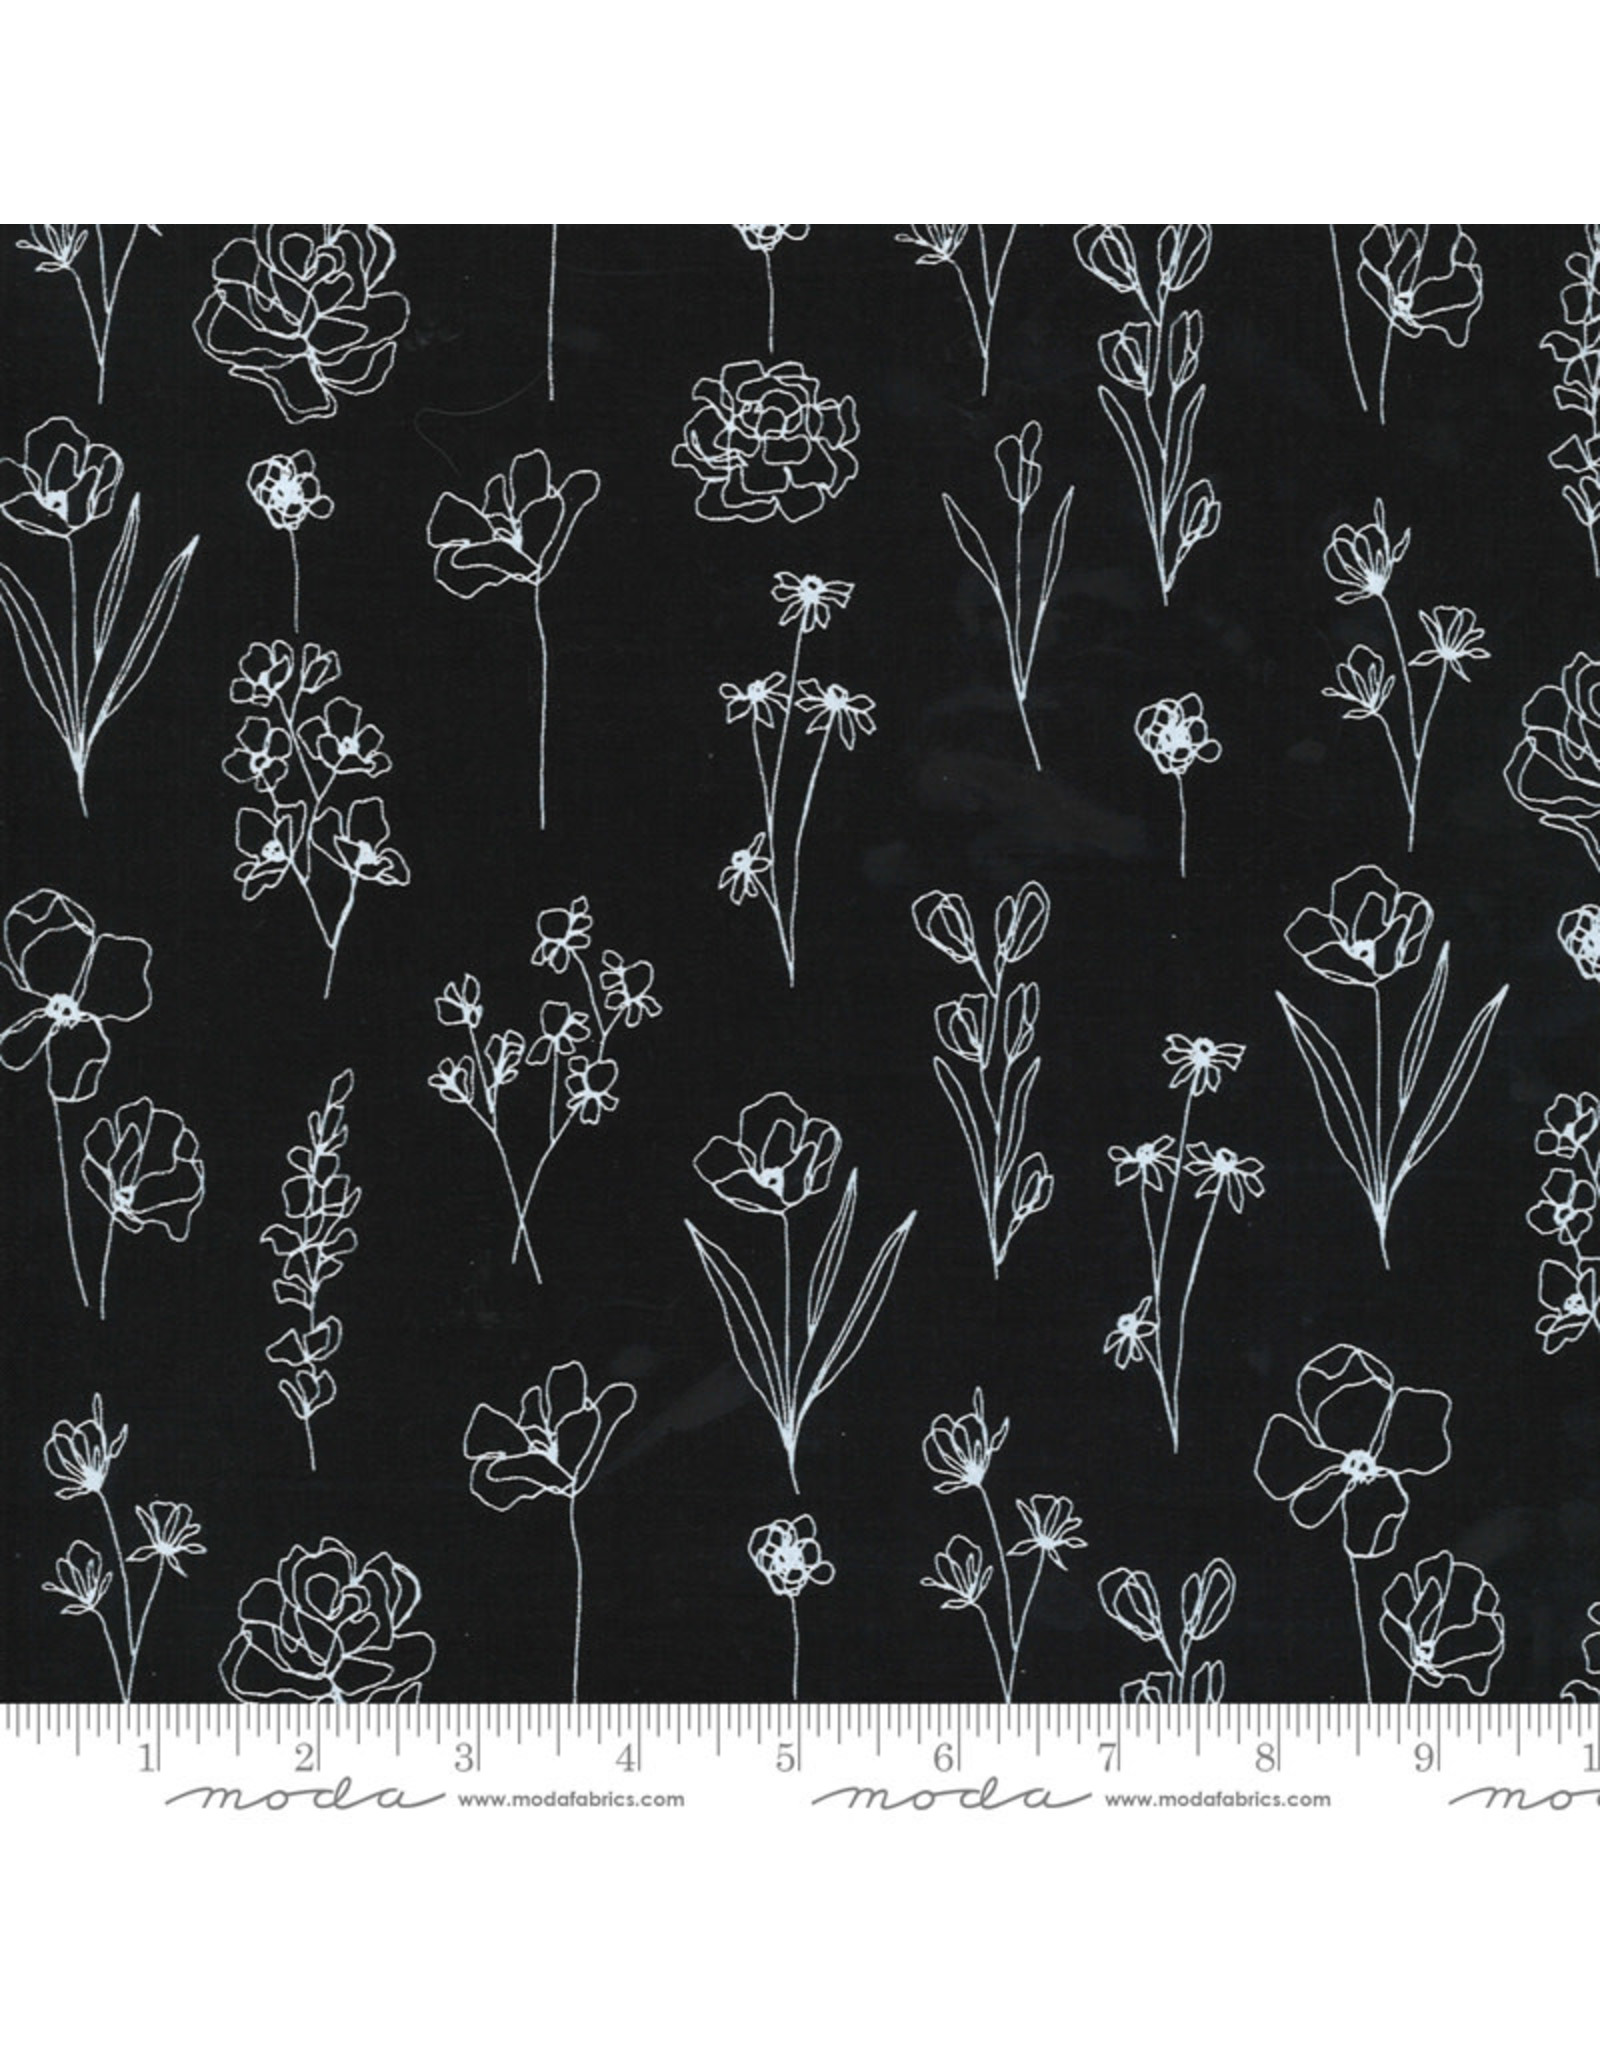 Moda Illustrations, Floral Doodle in Ink, Fabric Half-Yards